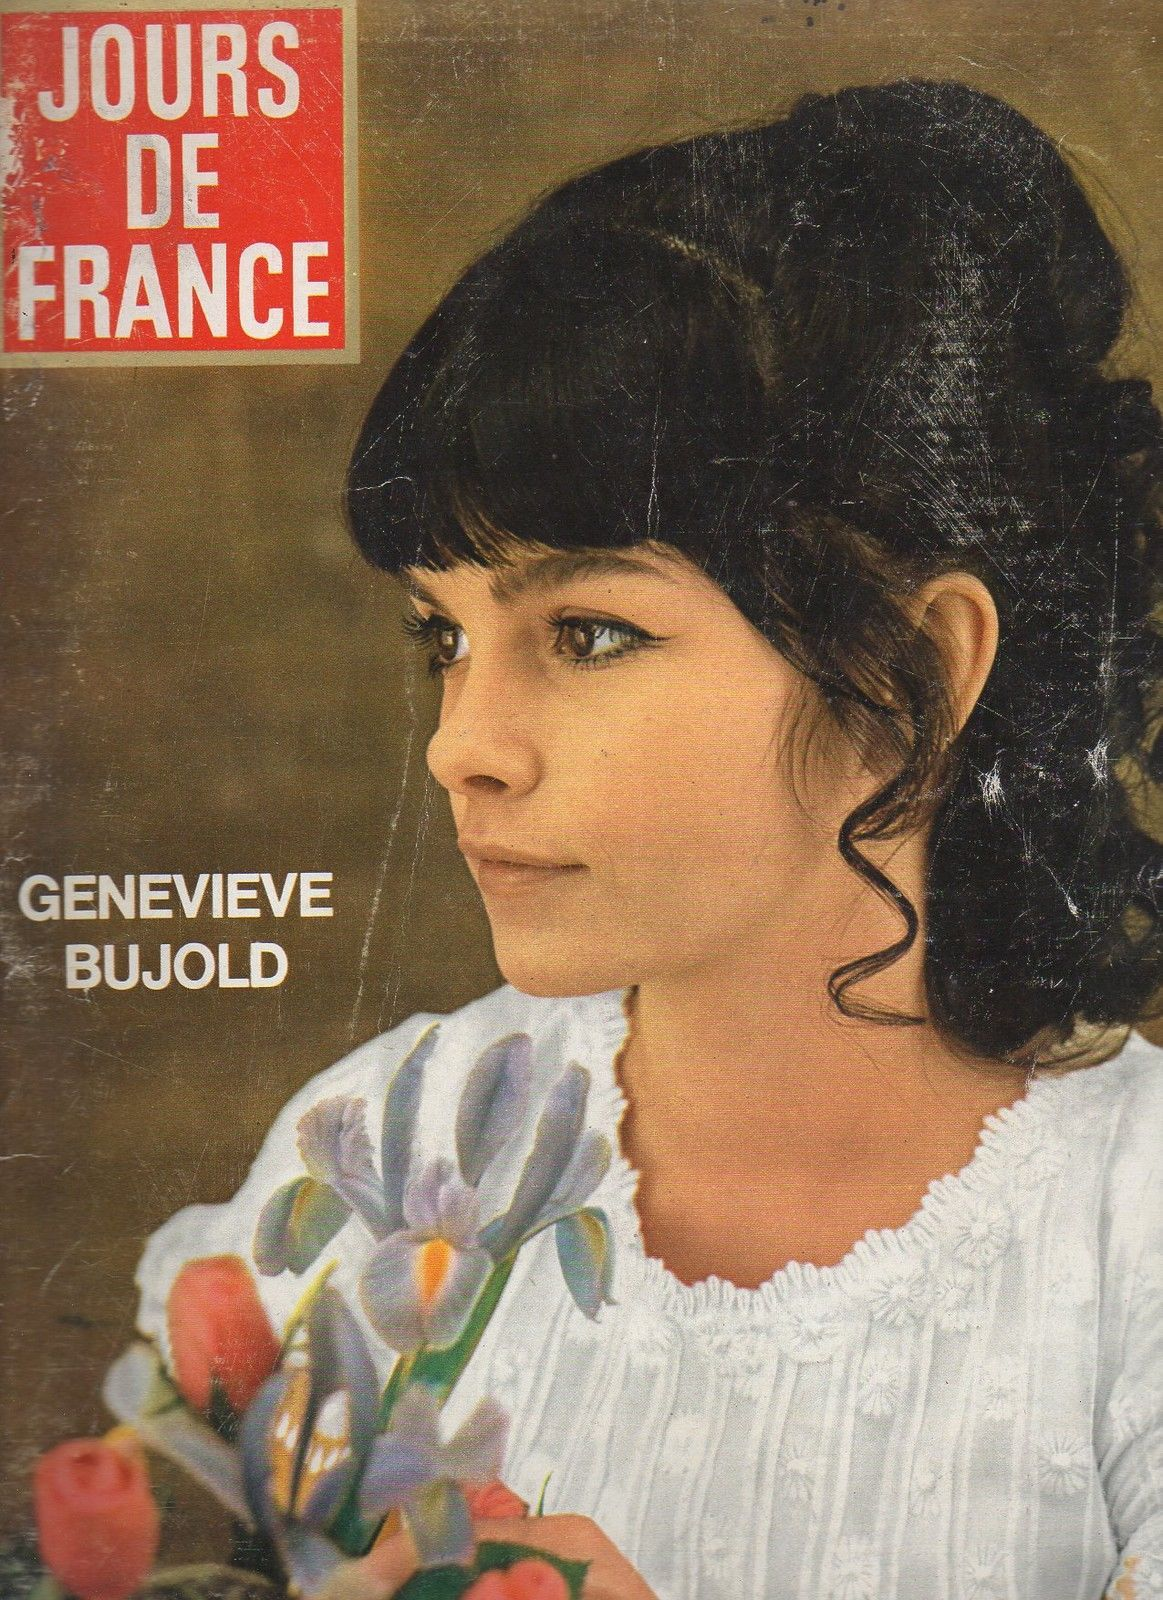 Genevieve Bujold Nude with regard to geneviève bujold | genevieve bujold - unique & beautiful